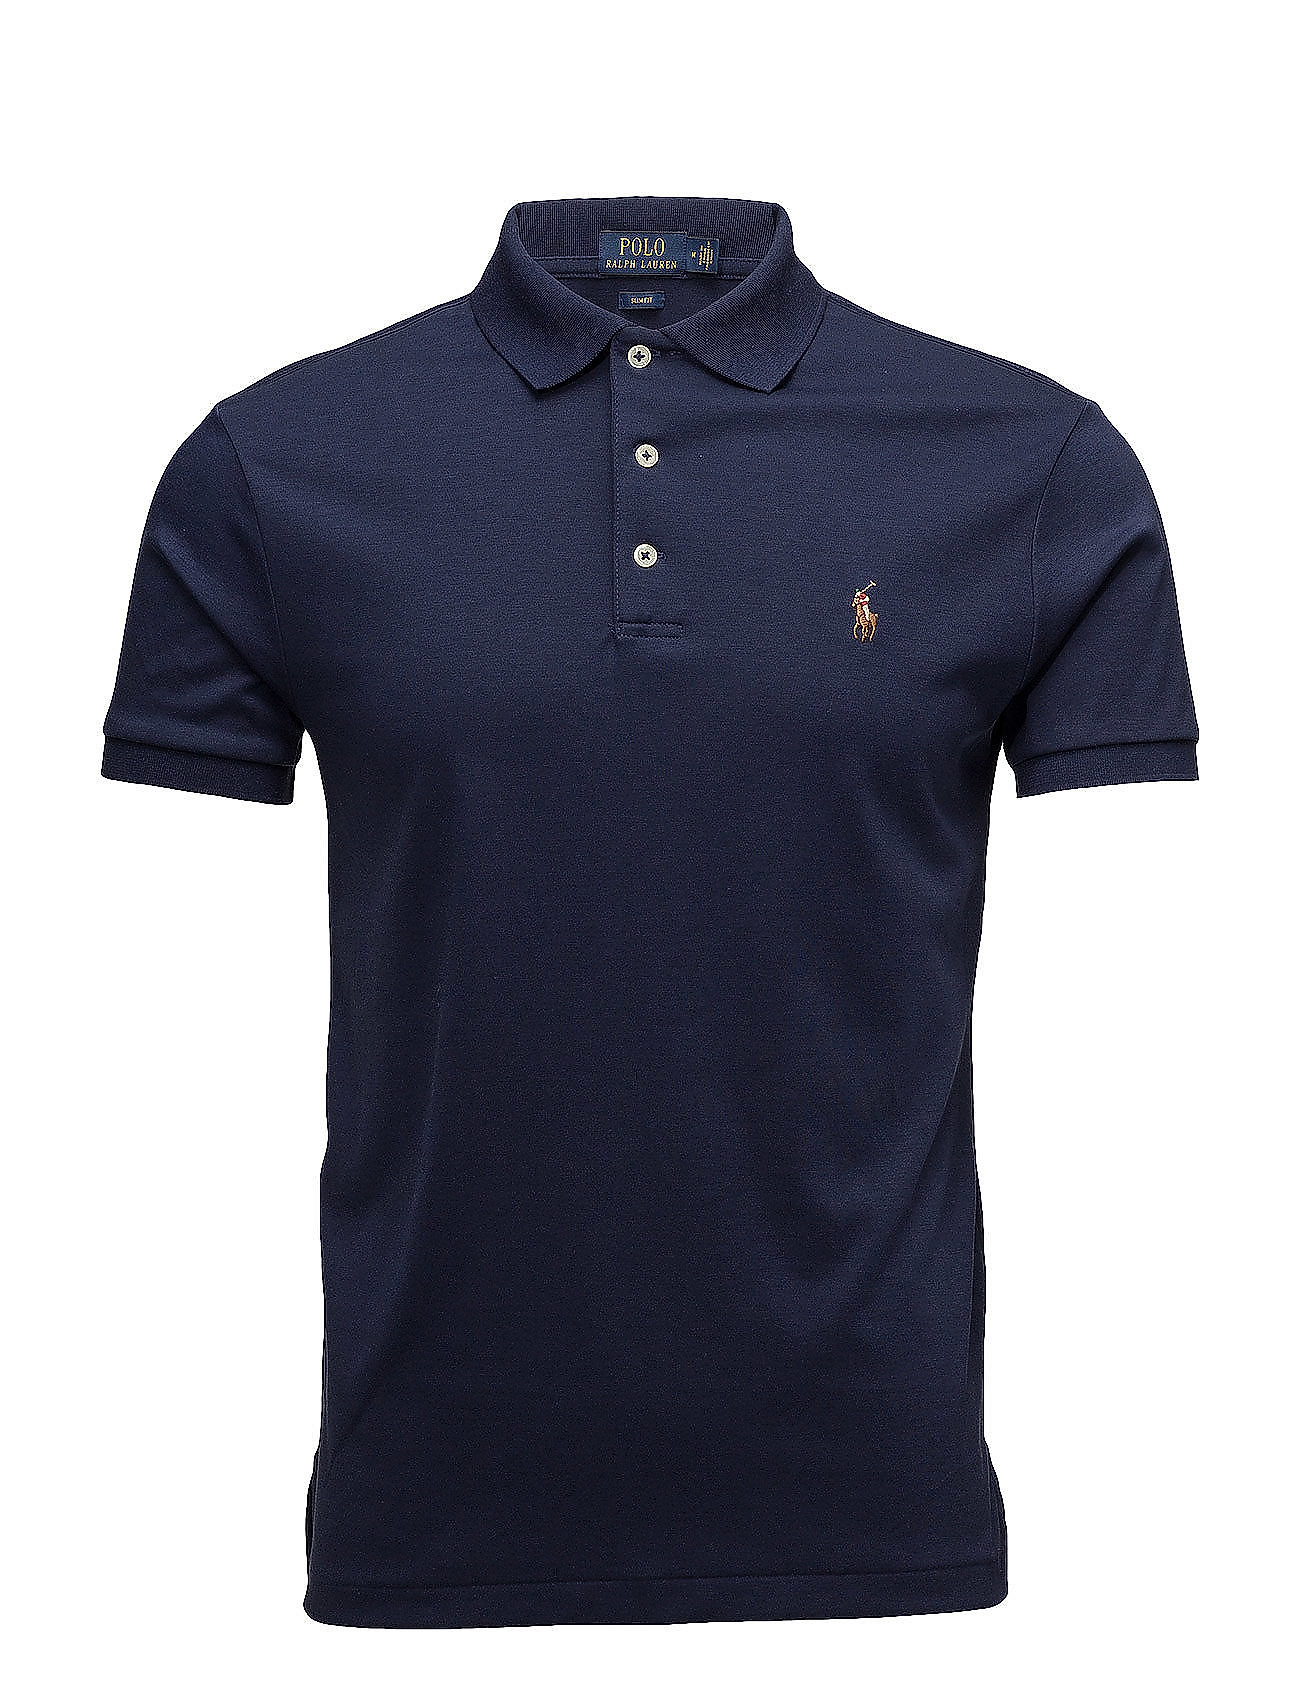 d9538e7a Slim Fit Soft-touch Polo Shirt (French Navy) (£85) - Polo Ralph ...